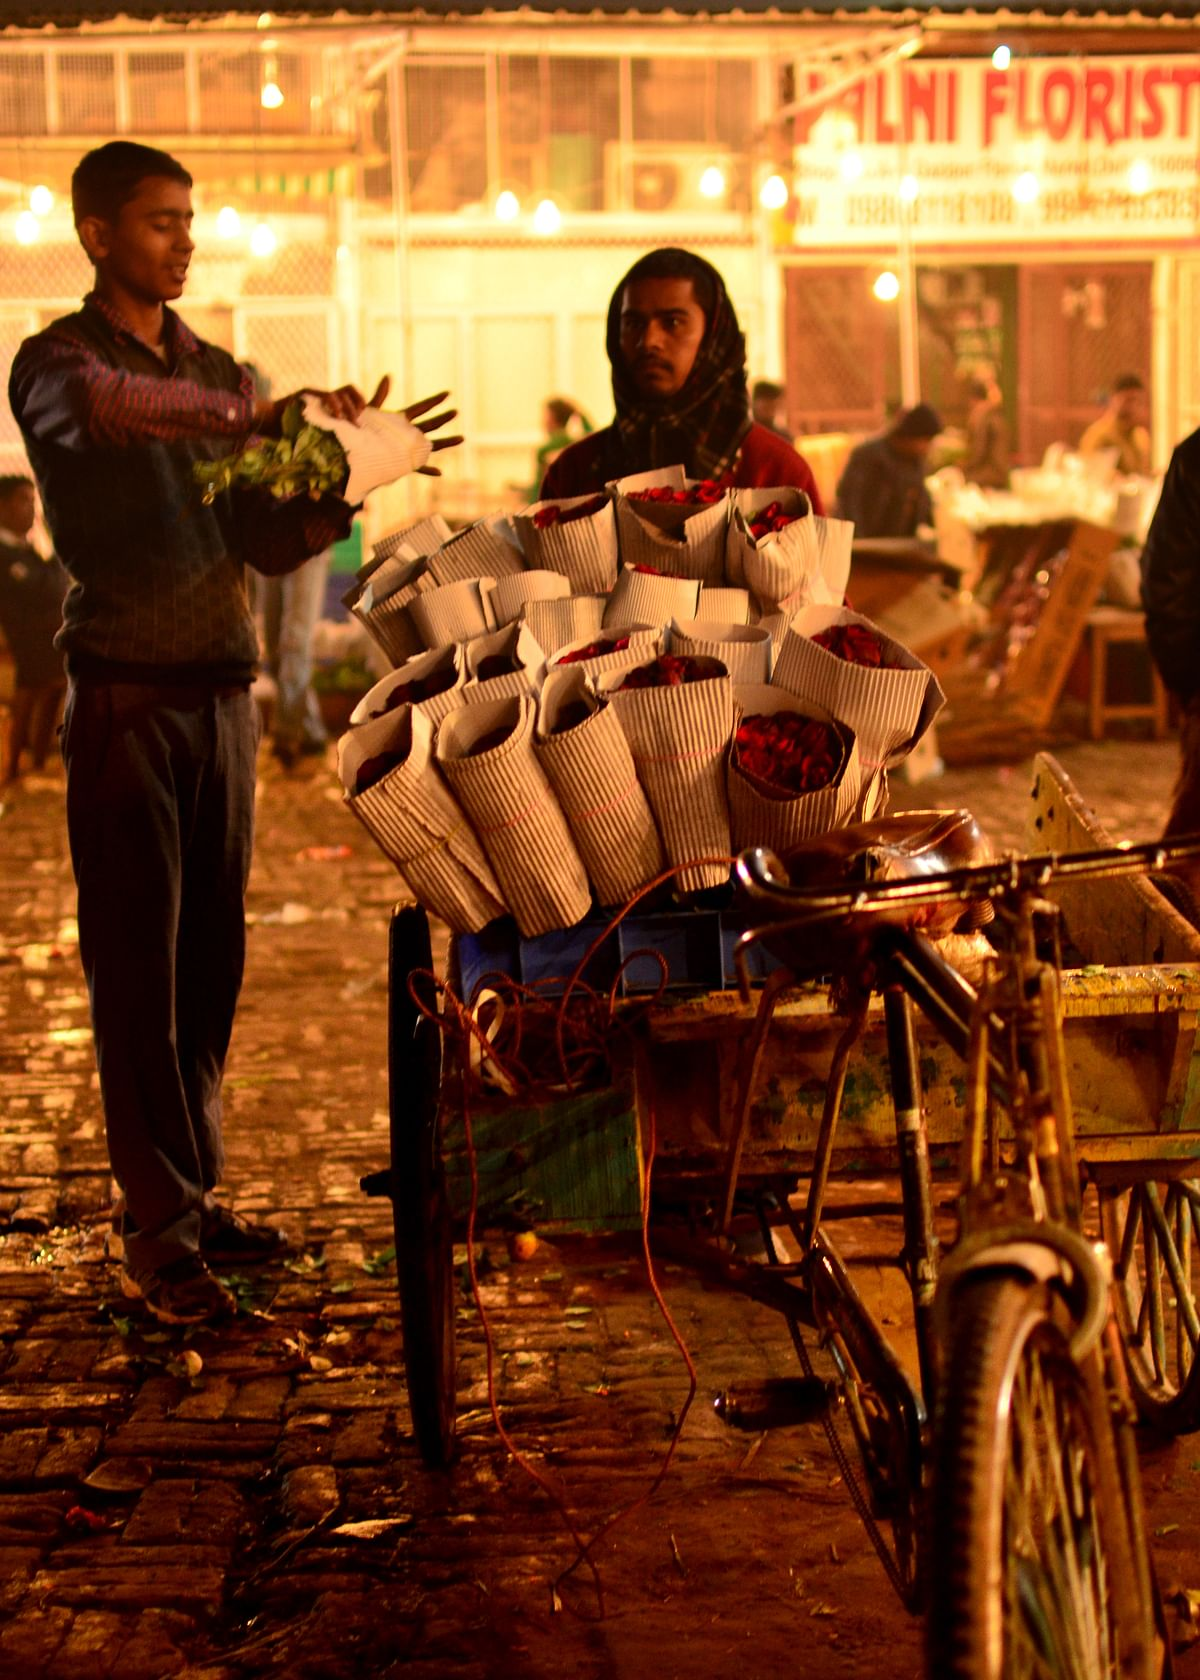 Dealers have created similar standard of packing flowers in the market to maintain uniformity. (Photo: Prashant Chahal/<b>The Quint</b>)